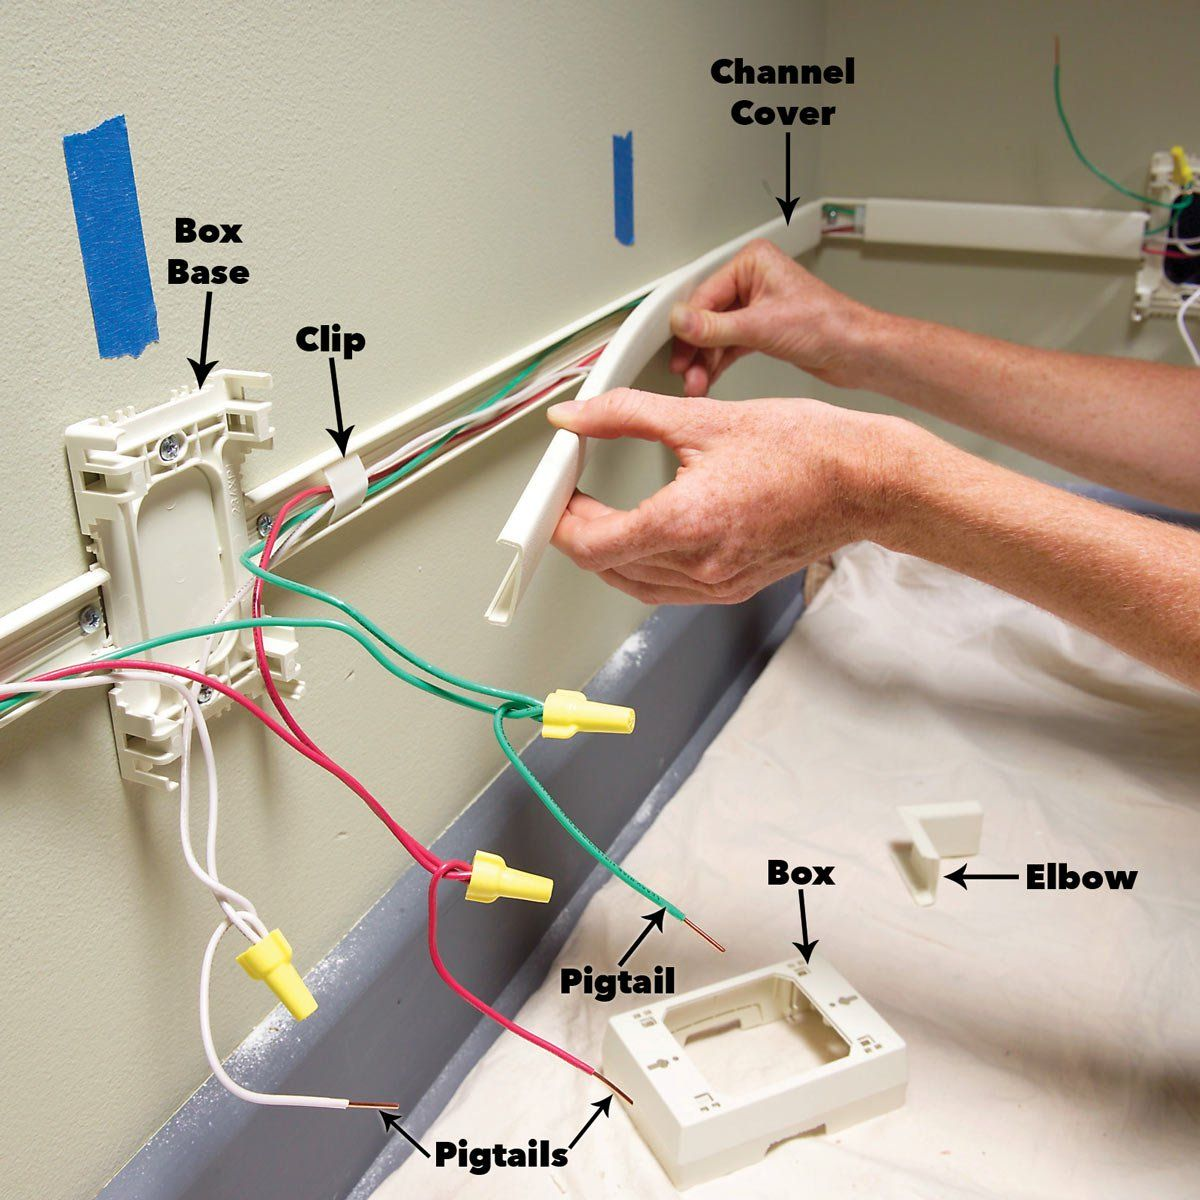 How To Add Outlets Easily With Surface Wiring Electrical Wiring Electrical Wiring Outlets Diy Electrical